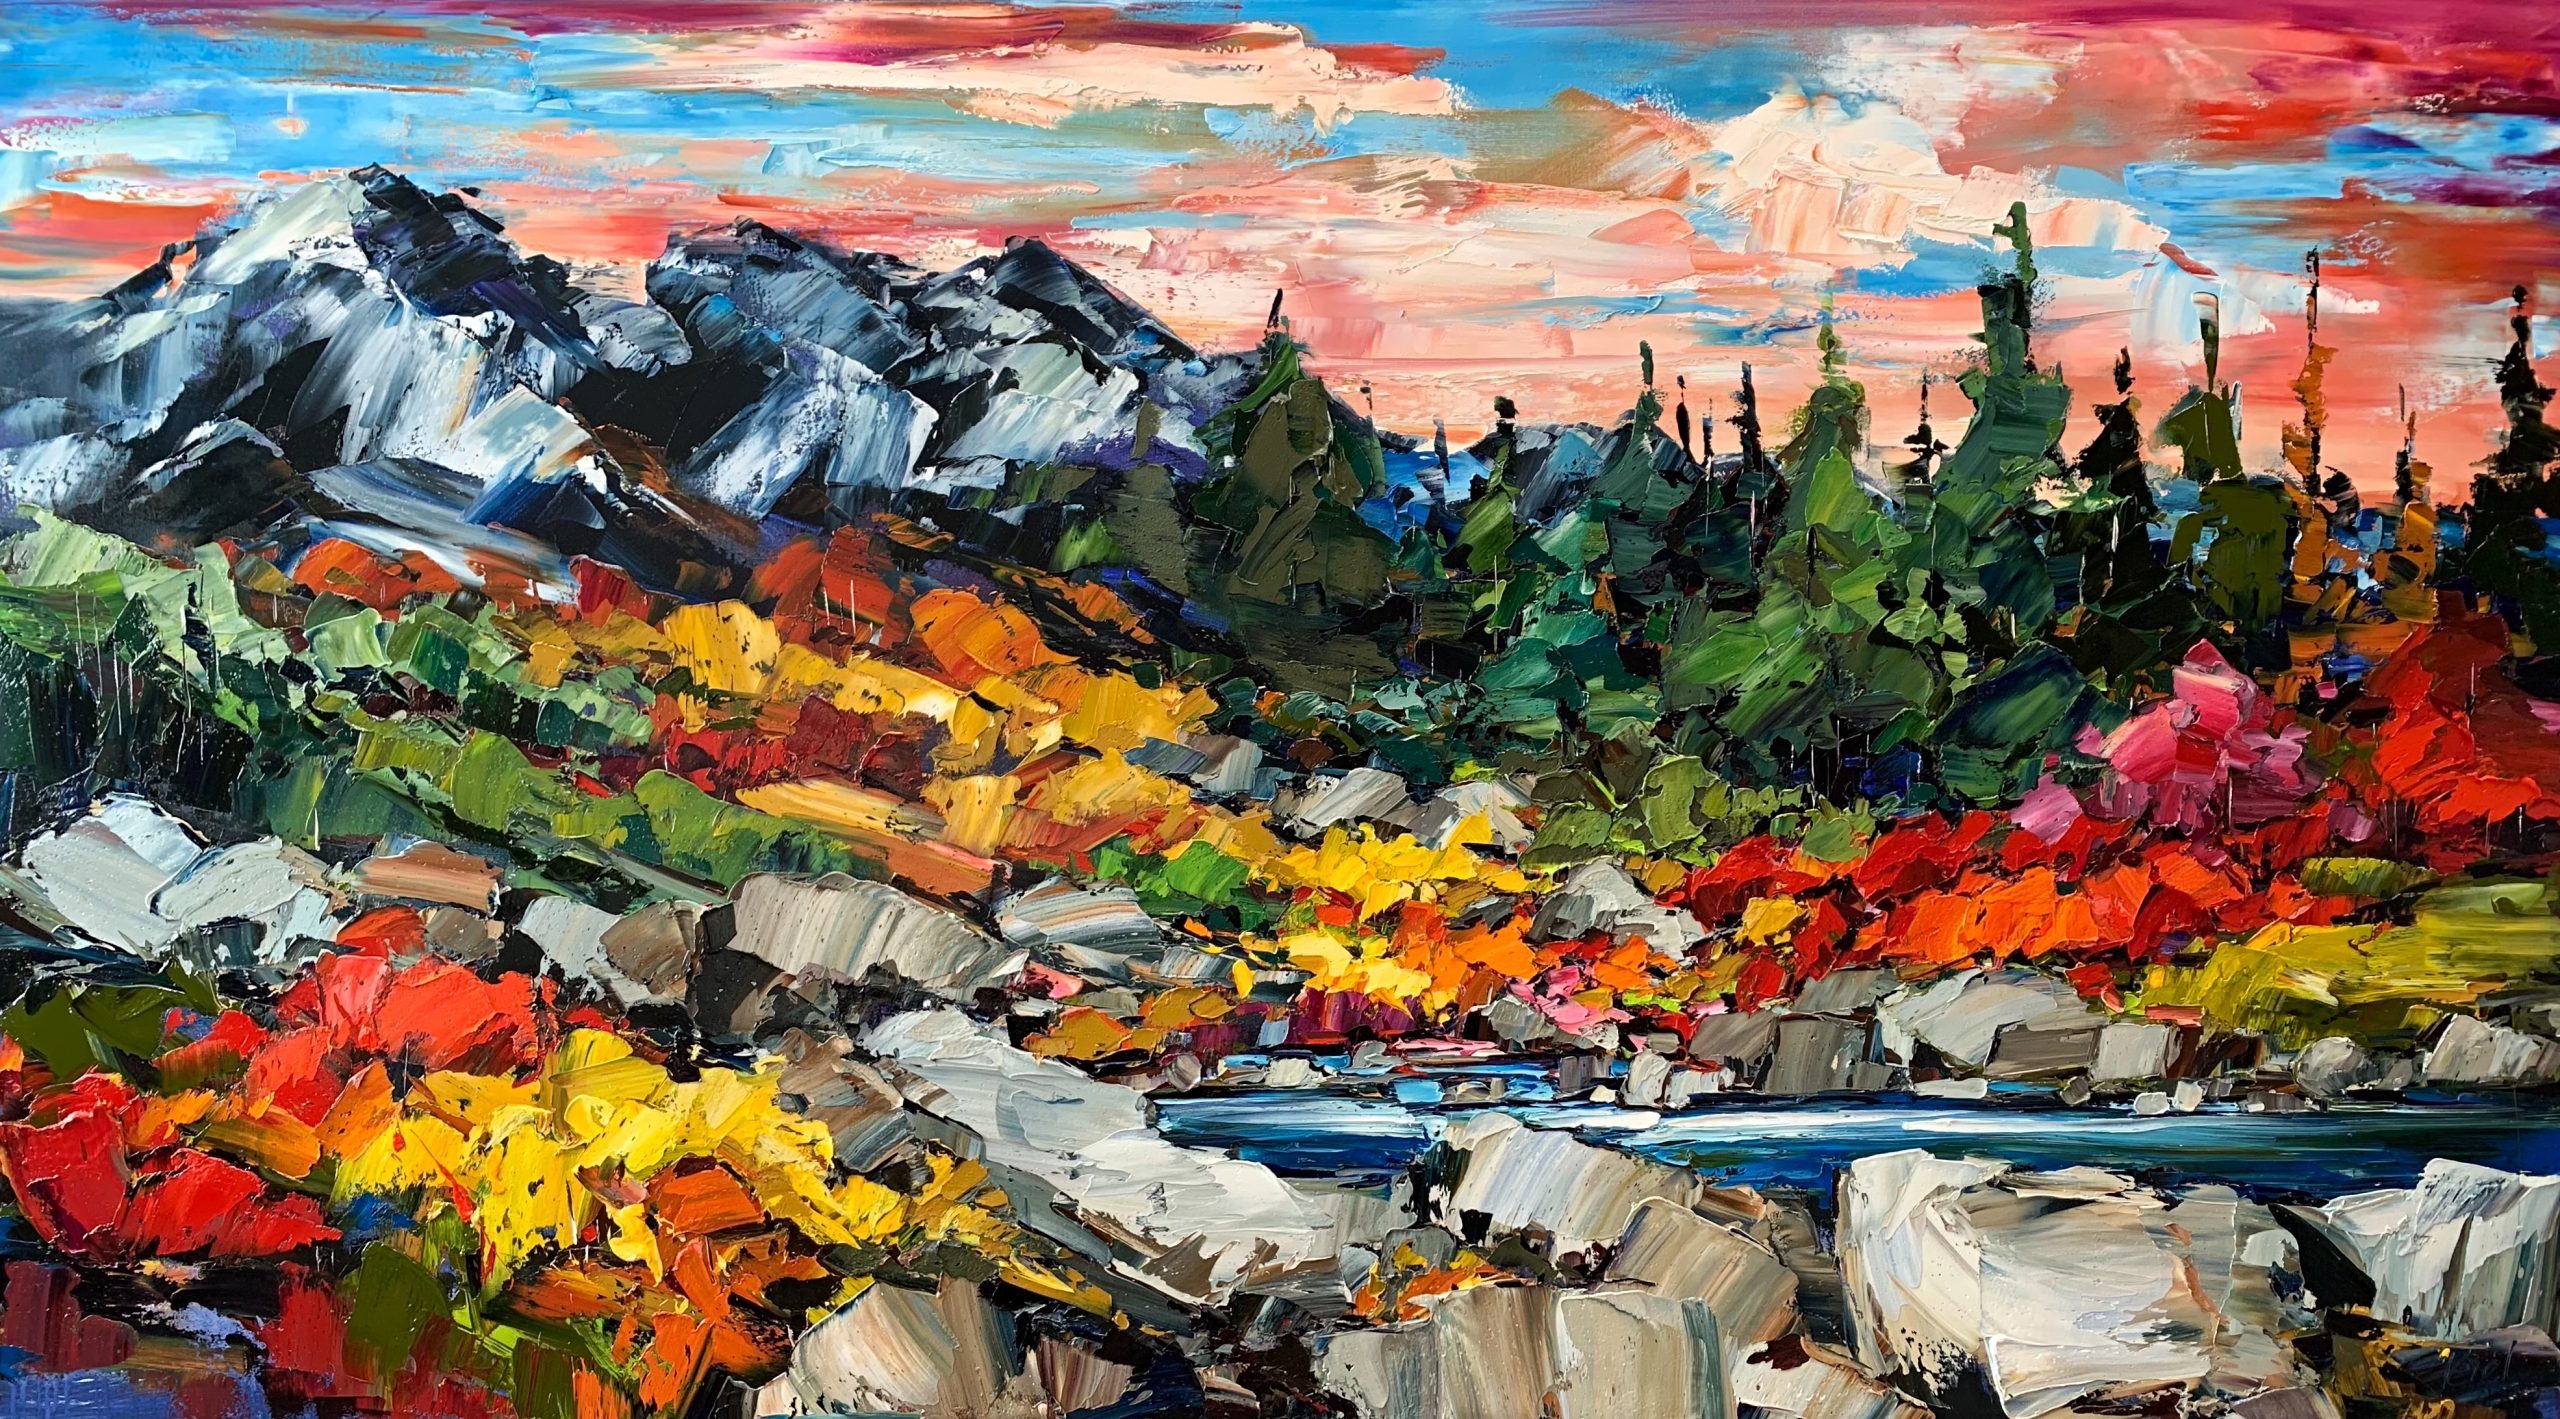 Long Time Passing, landscape painting by Kimberly Kiel | Effusion Art Gallery + Cast Glass Studio, Invermere BC